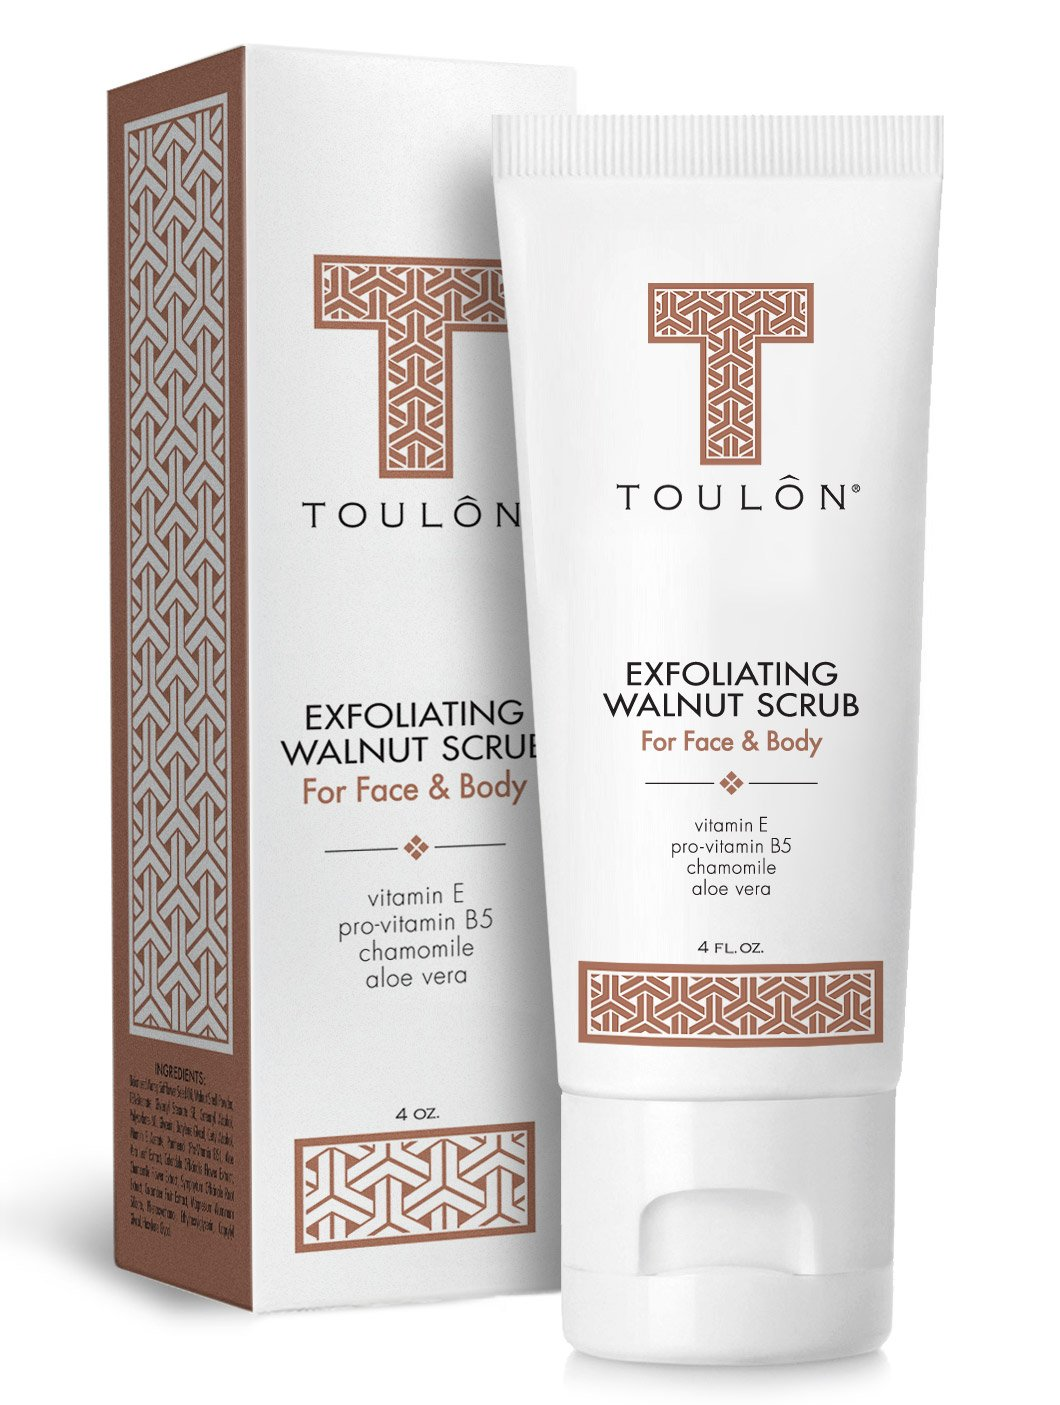 Exfoliating Face Scrub - Exfoliate Scrub - Face and Body; Walnut Facial Exfoliator. Great Exfoliant for Women or Men. Free Gift/No Risk by TOULON